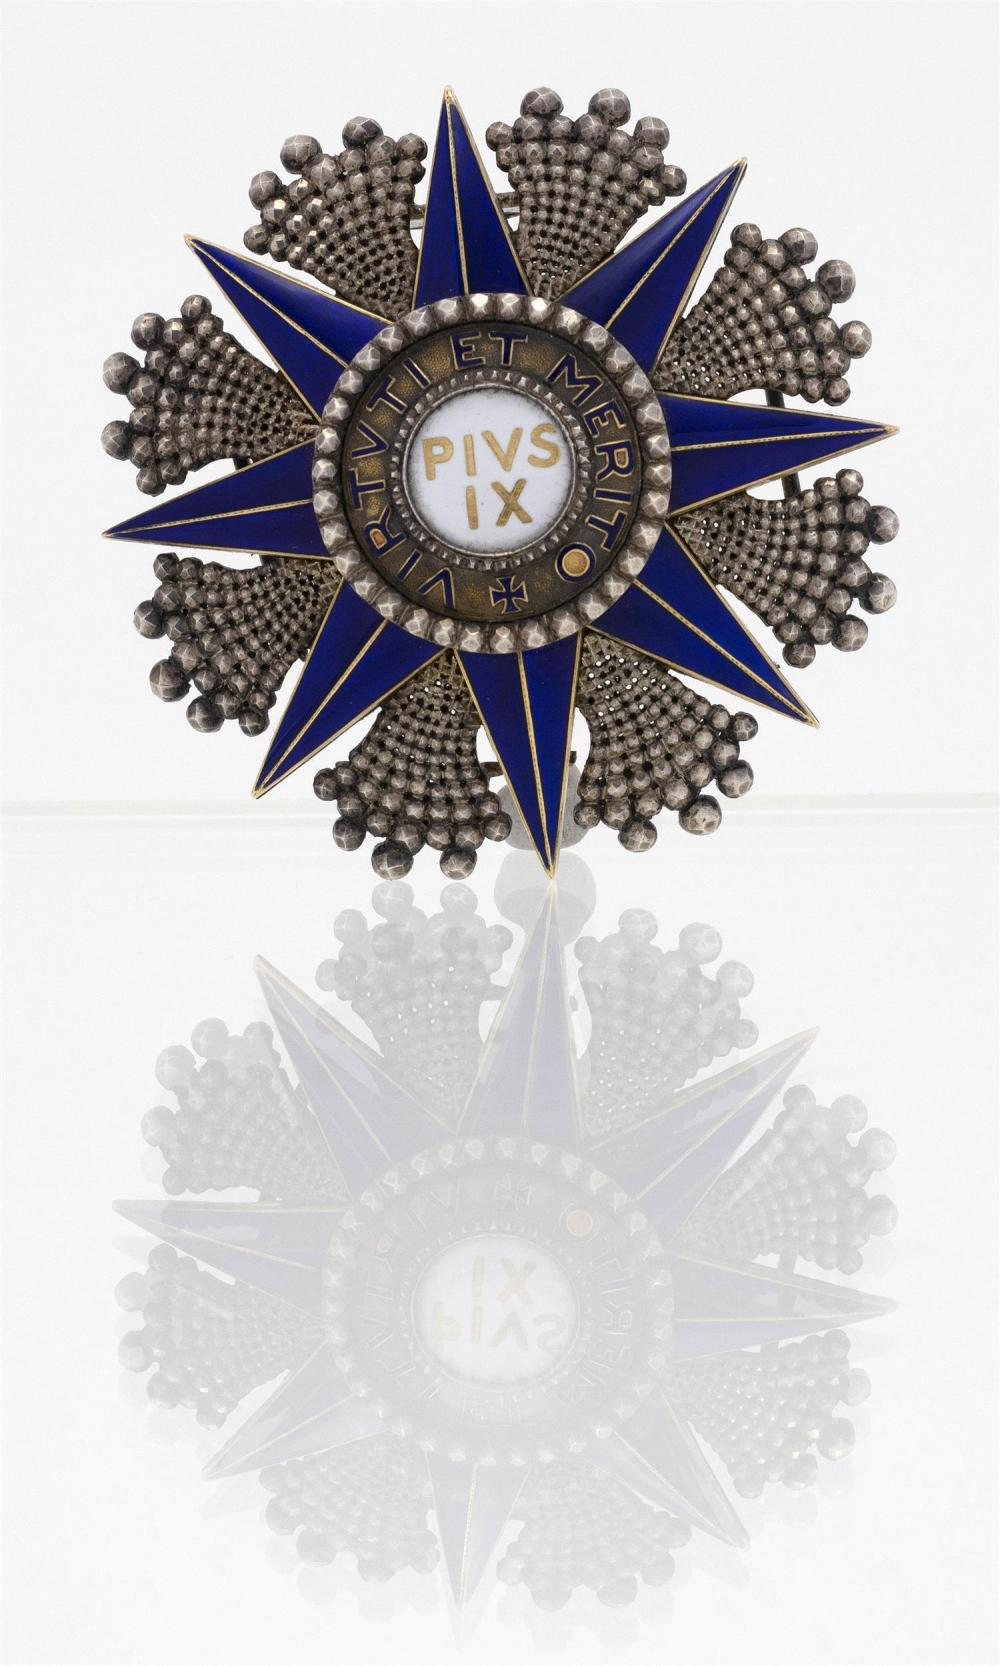 """PAPAL ORDER OF PIUS IX SILVER BREAST STAR Made by Lemaitre, Paris. Silver and enamel. Diameter 2.5""""."""